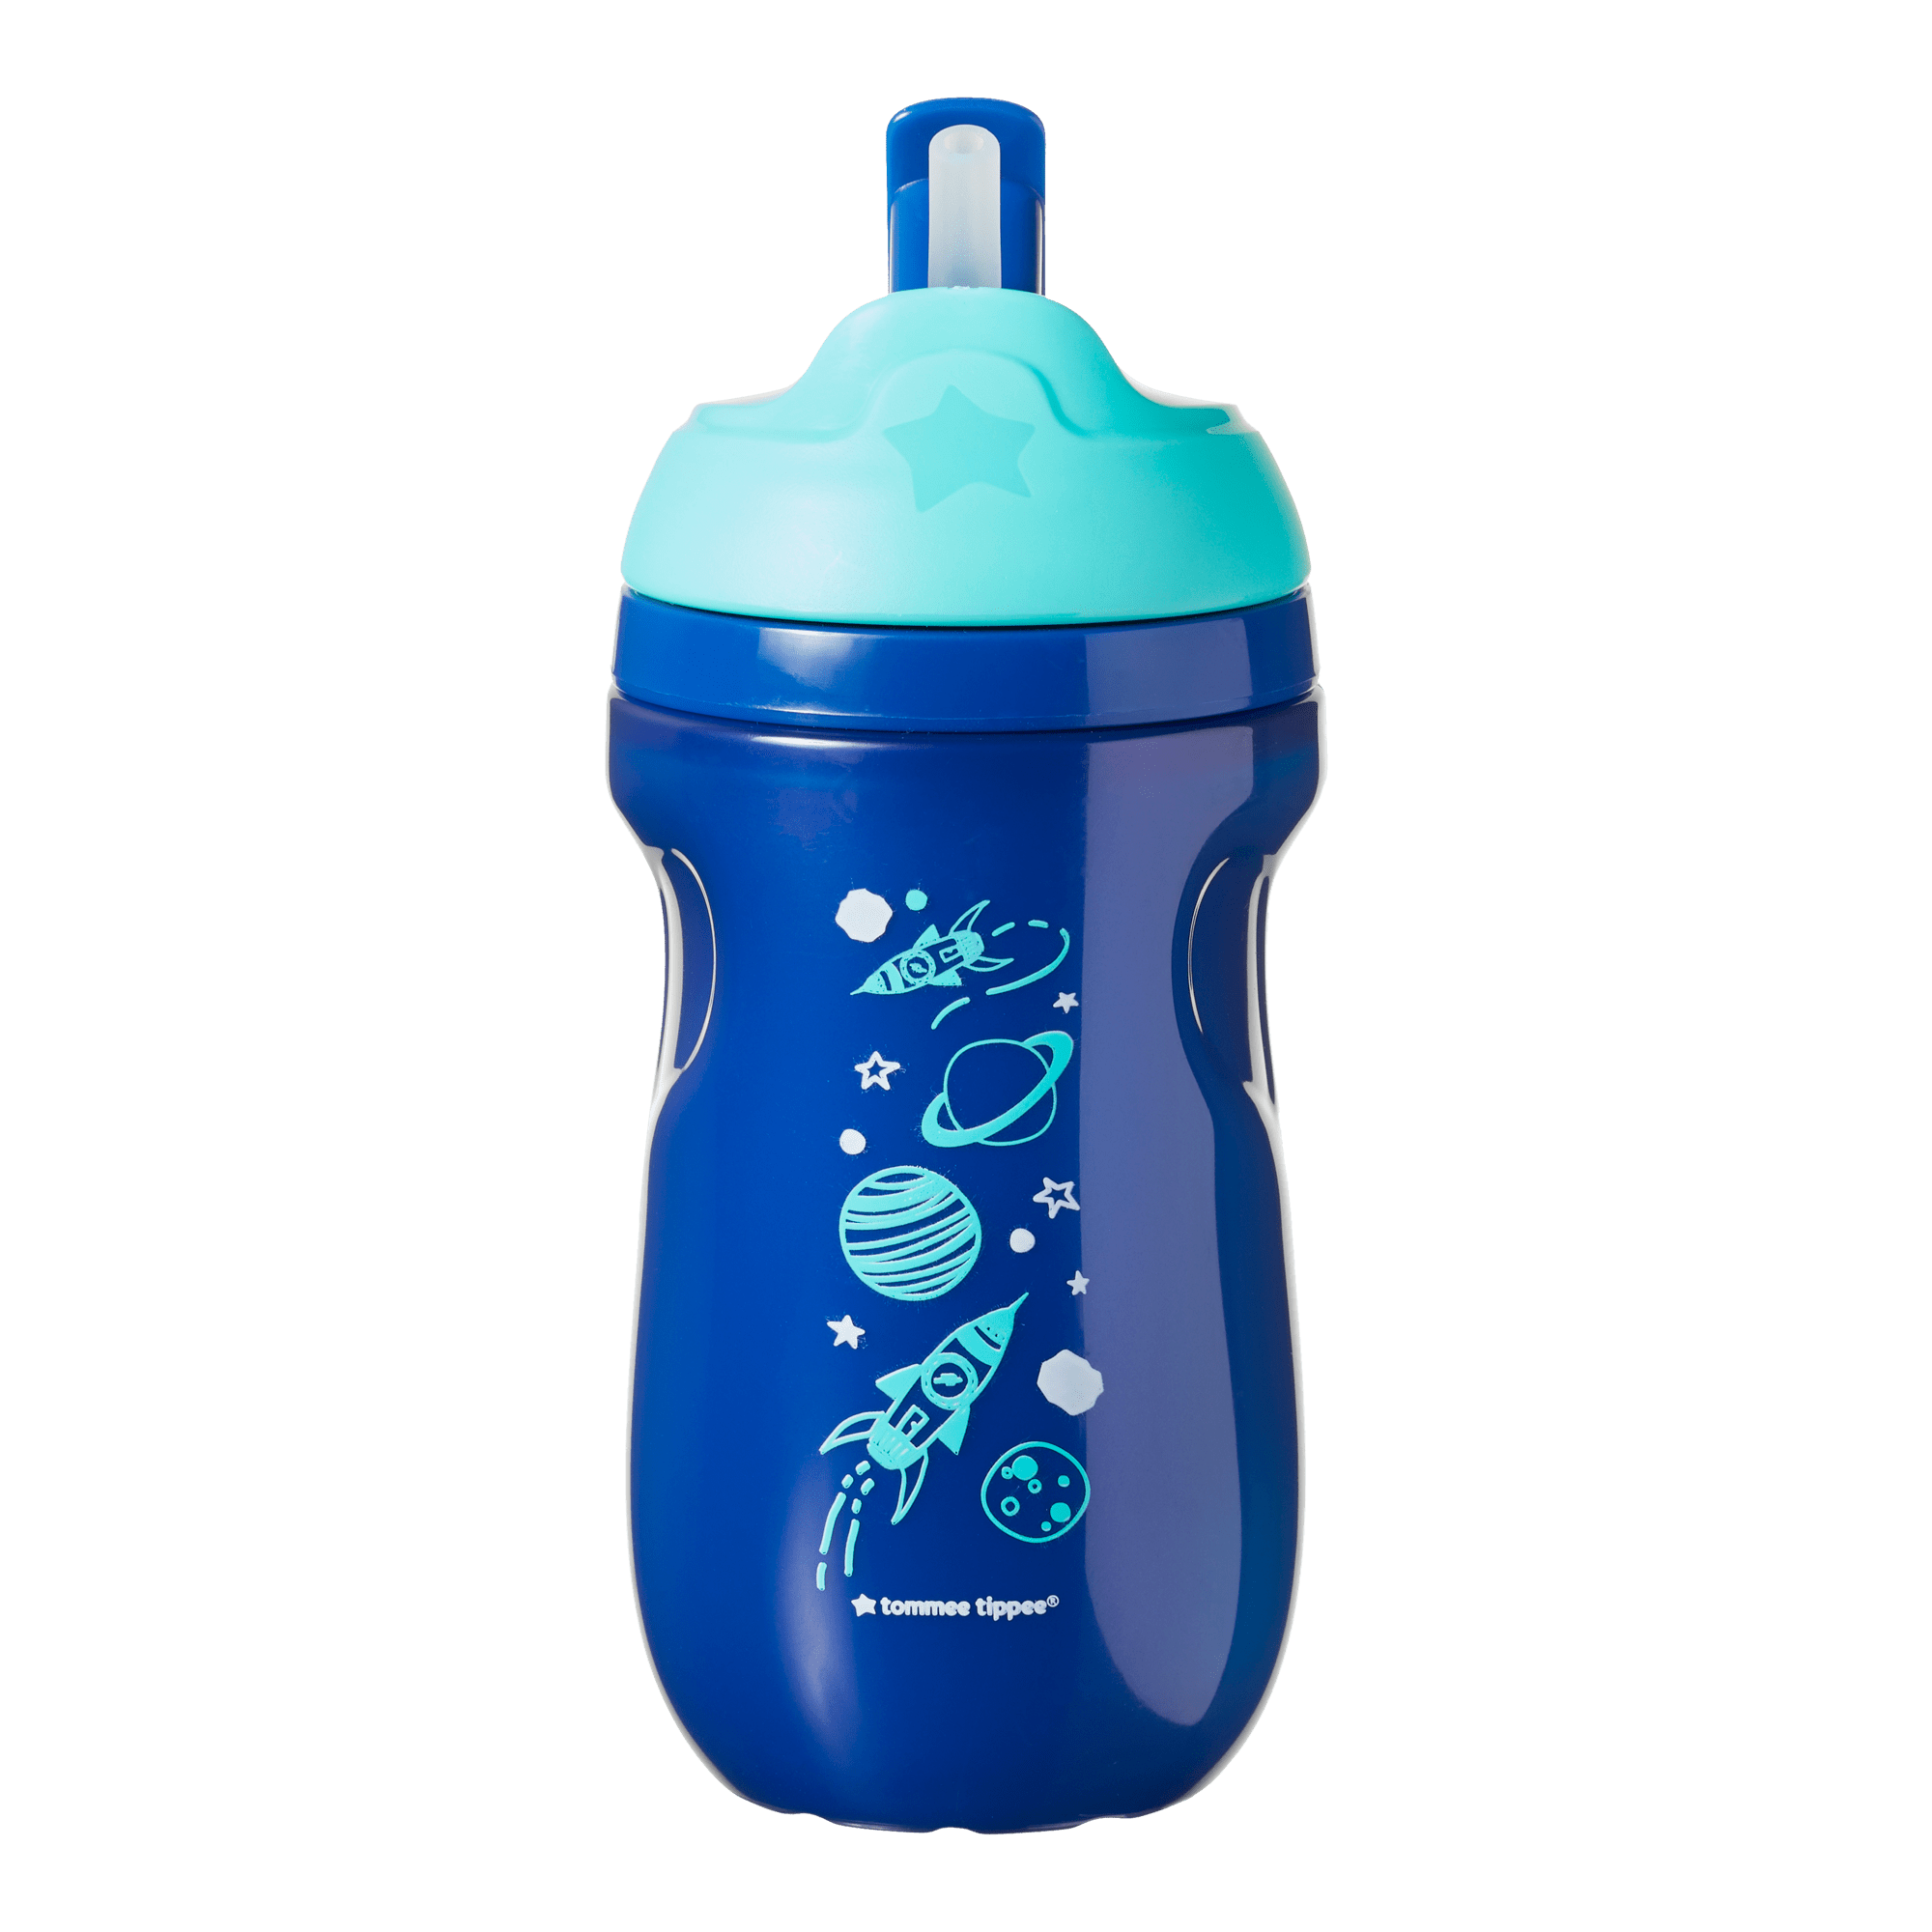 Copo Térmico Com Canudo Tommee Tippee - 260 ml -Tommee Tippee - 549291